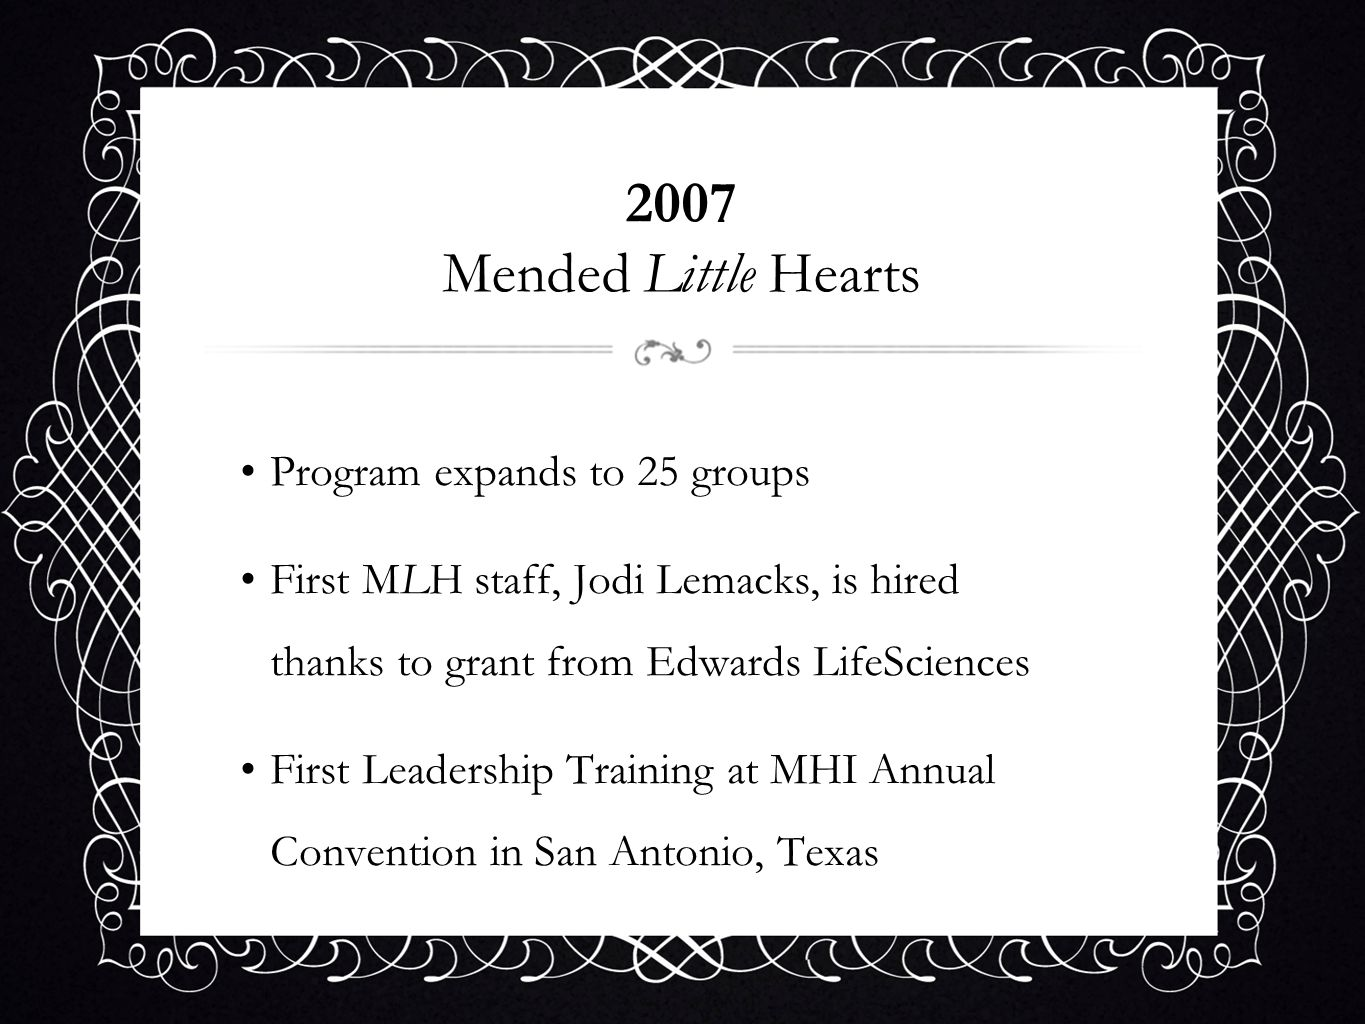 2007 Mended Little Hearts Program expands to 25 groups